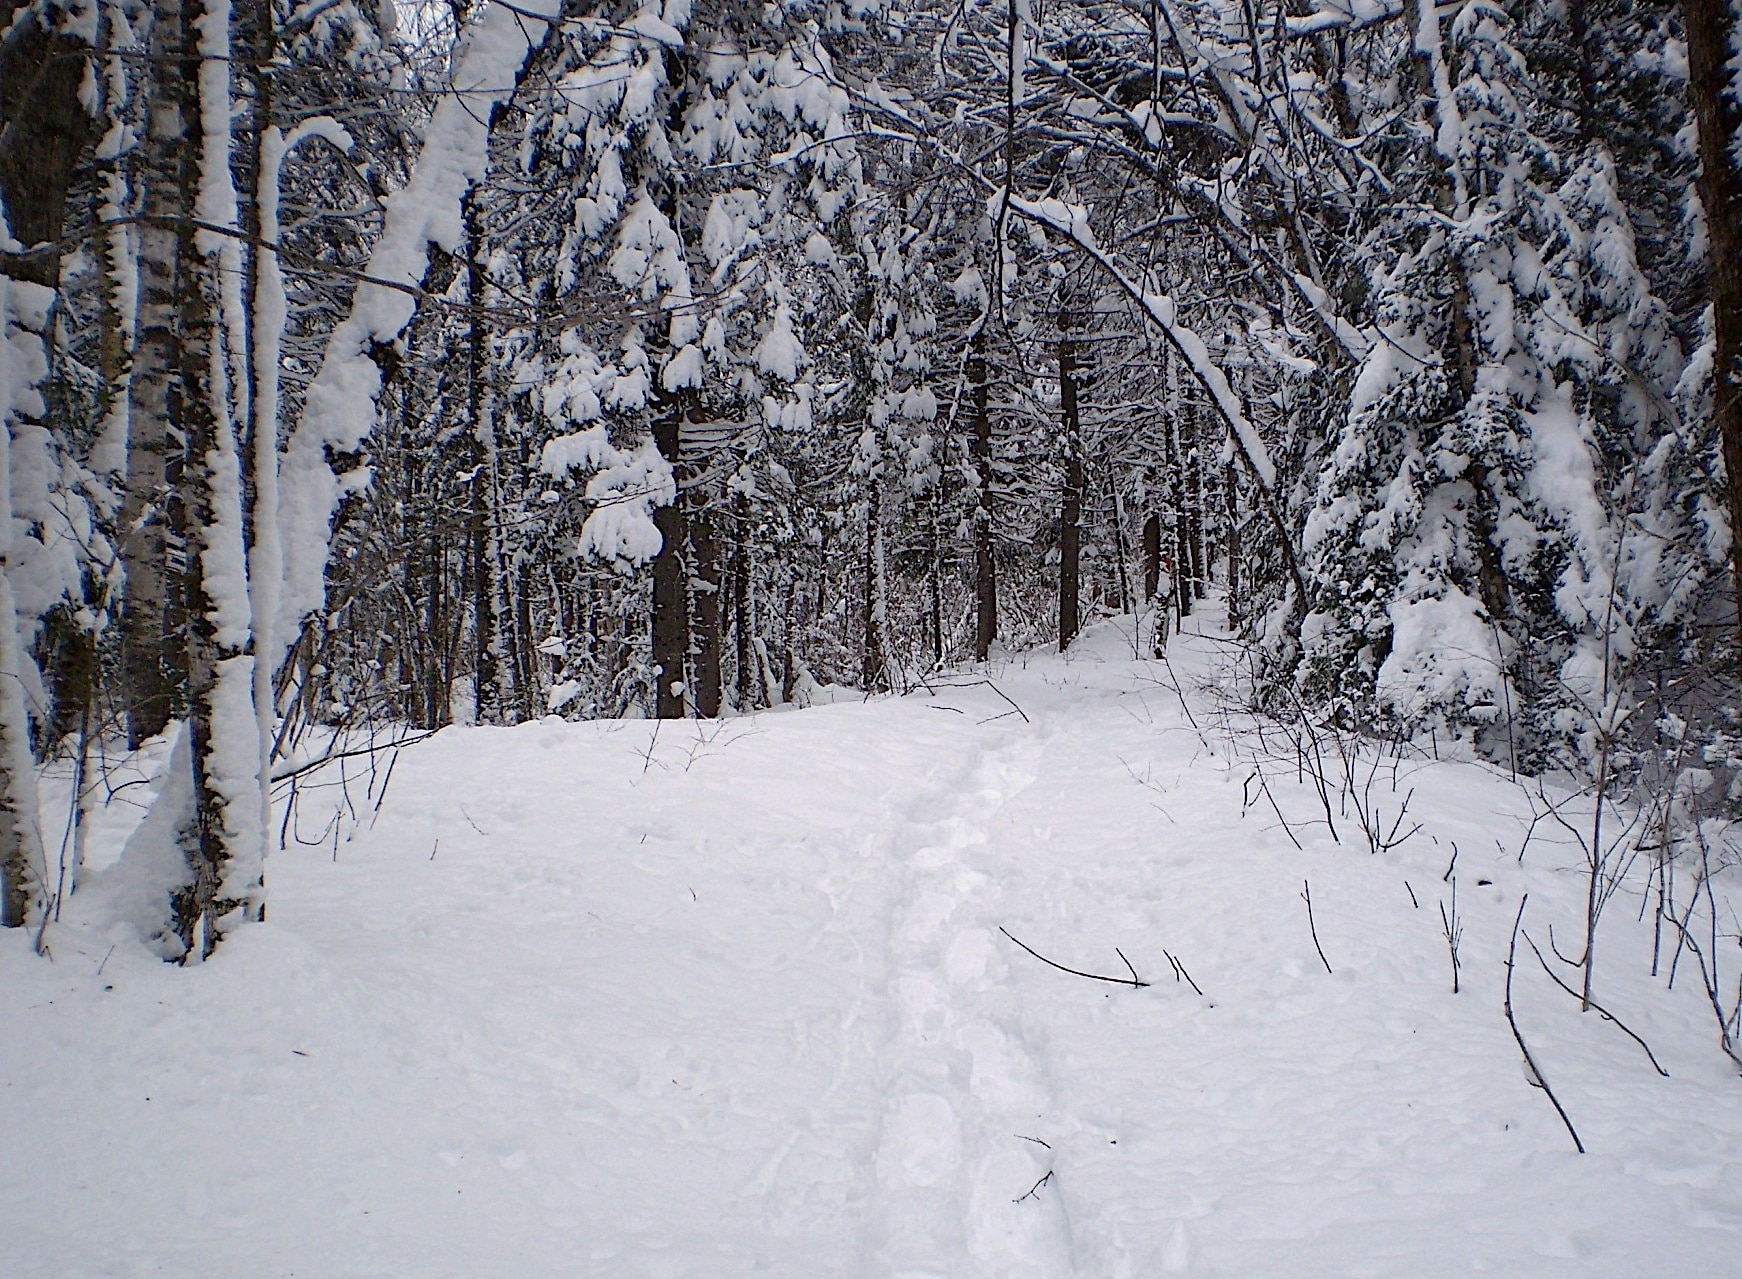 Snow-covered path surrounded by deciduous trees topped with snow